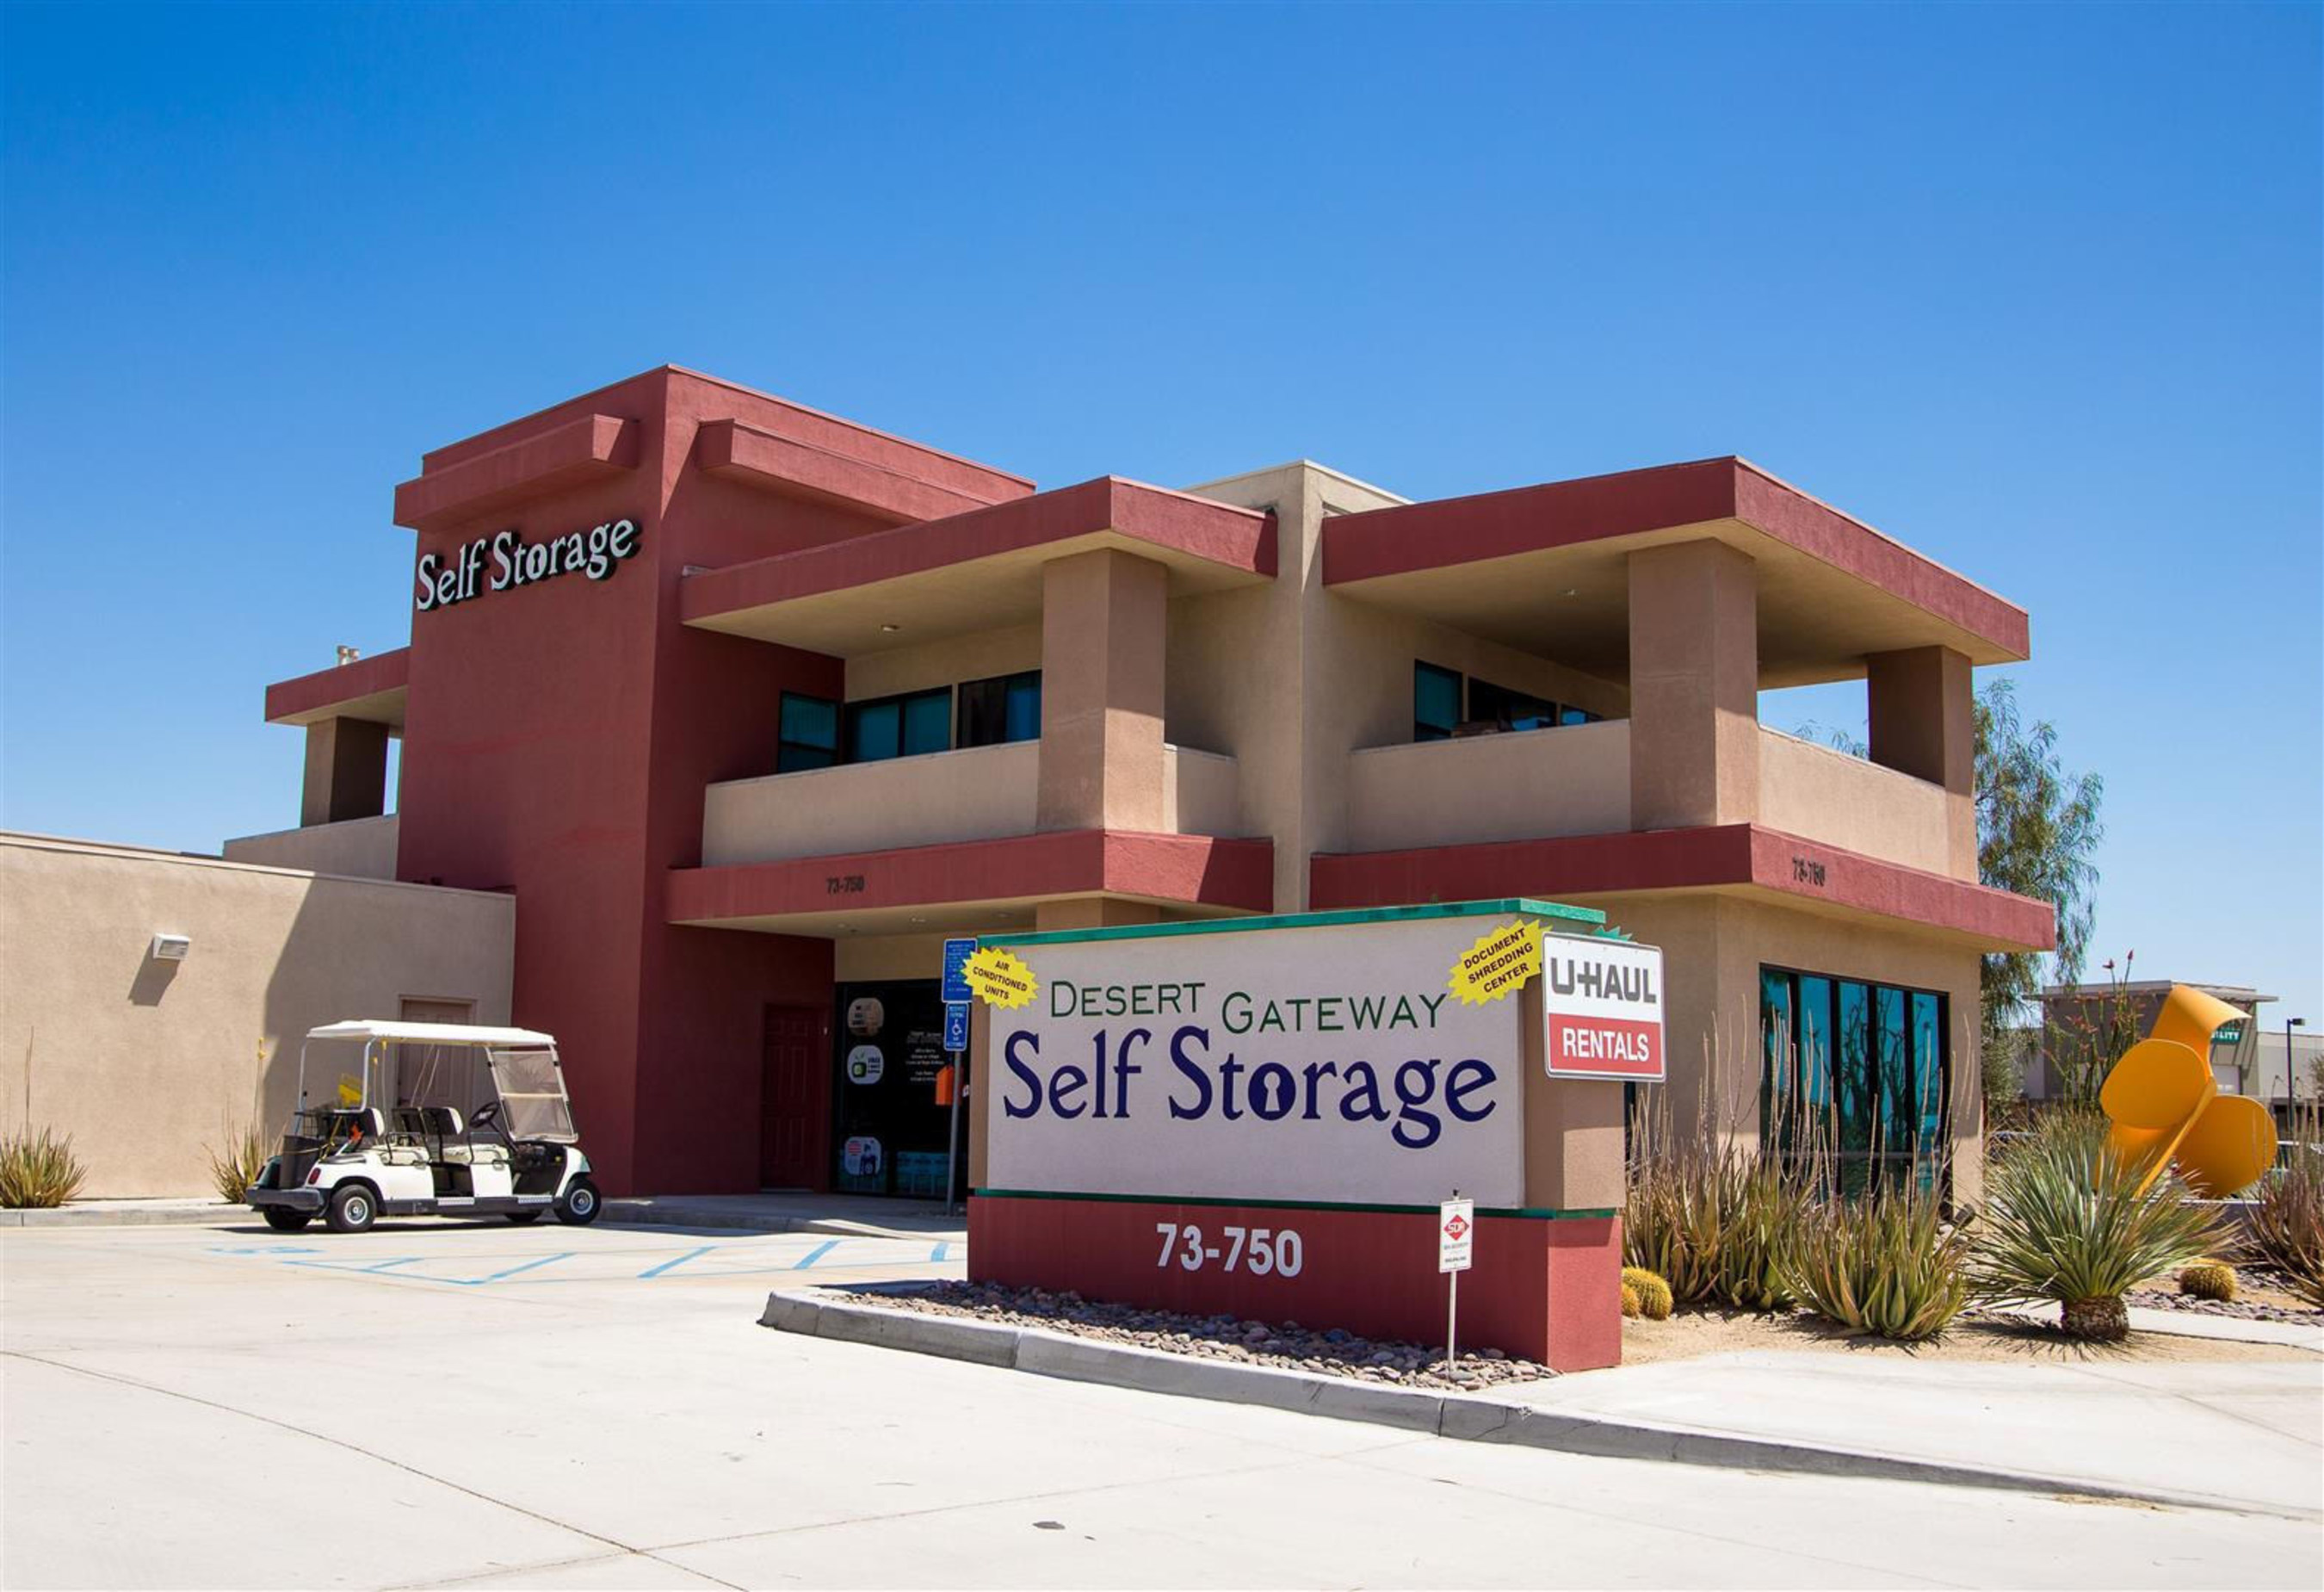 W. P. Carey's managed REIT, CPA:18 - Global, closes on 5 self-storage acquisitions totaling $32 million. ...